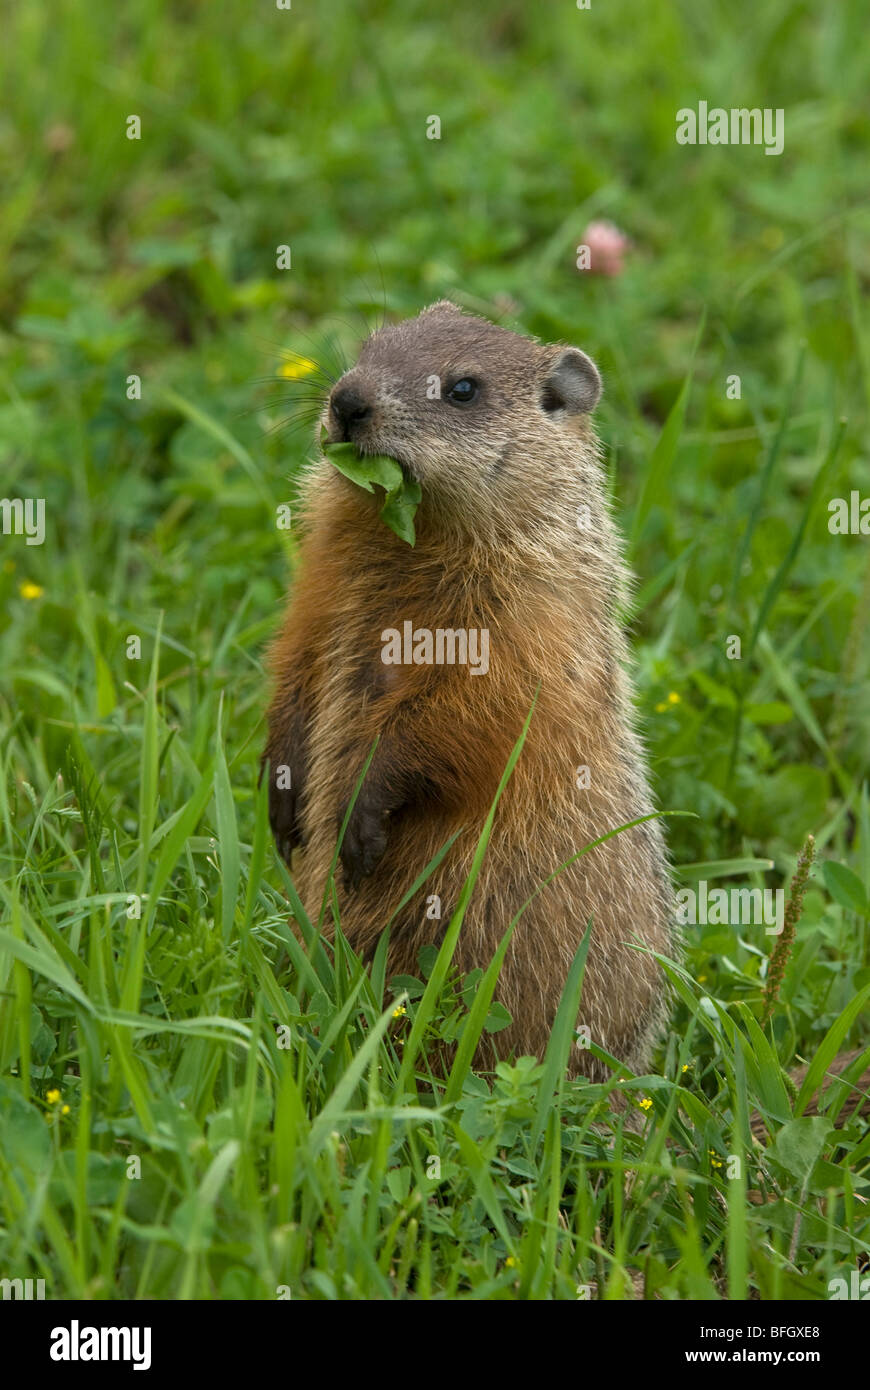 Groundhog (Marmota monax) feeding on dandelion leaf in green summer meadow, Ontario, Canada - Stock Image